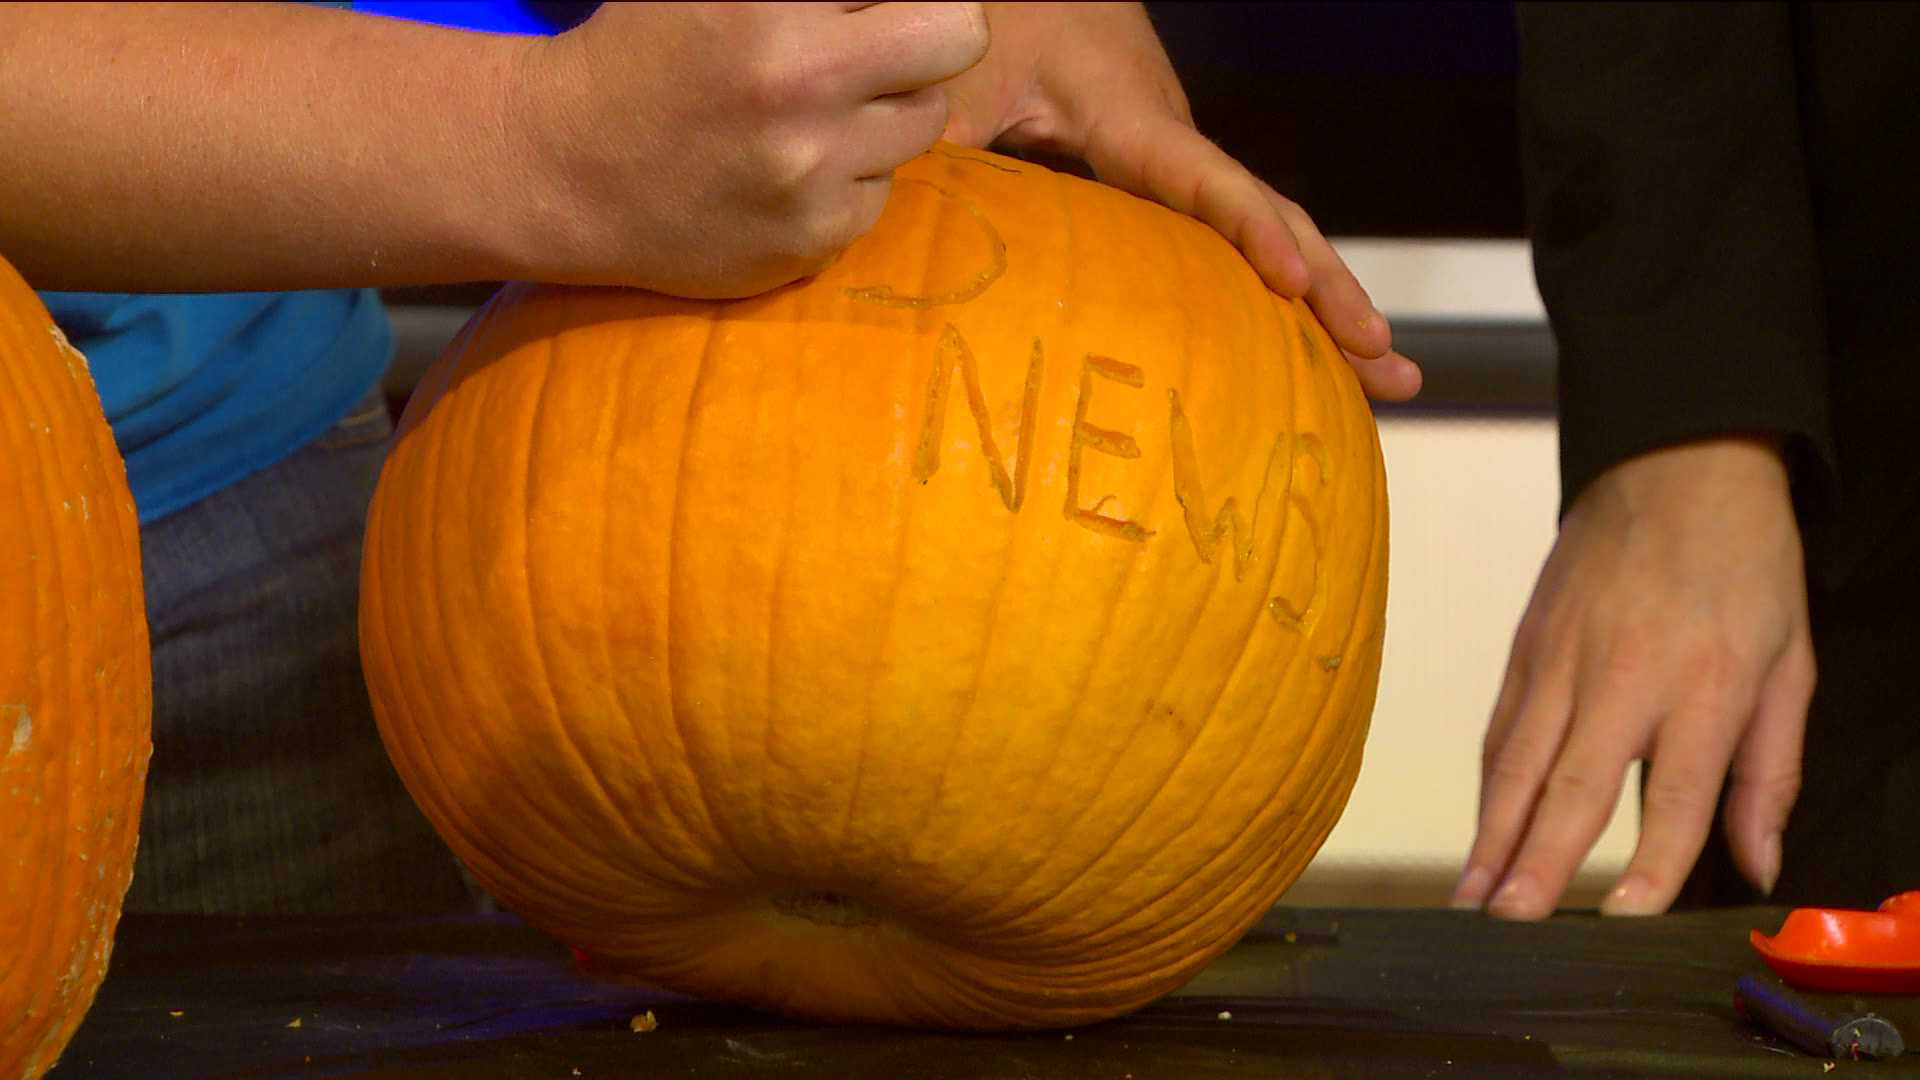 5NEWS gets its own special pumpkin.